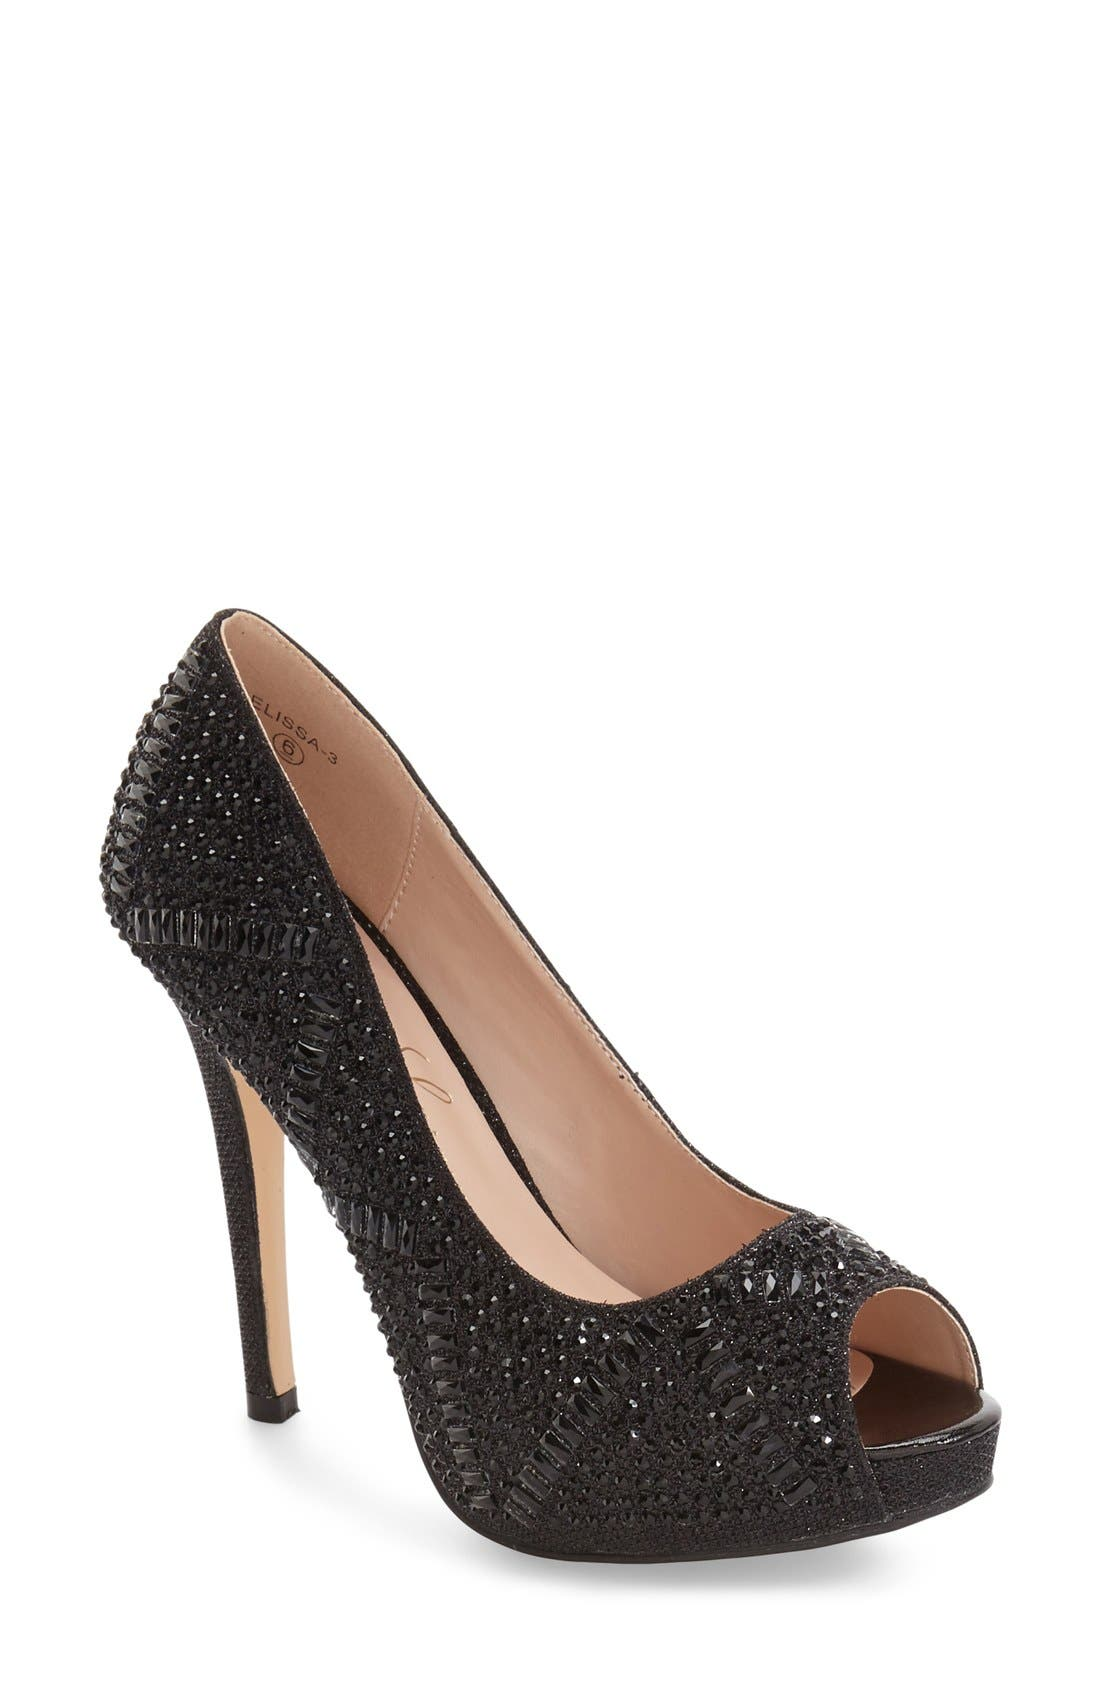 Elissa - 3 Peep Toe Pump,                         Main,                         color,